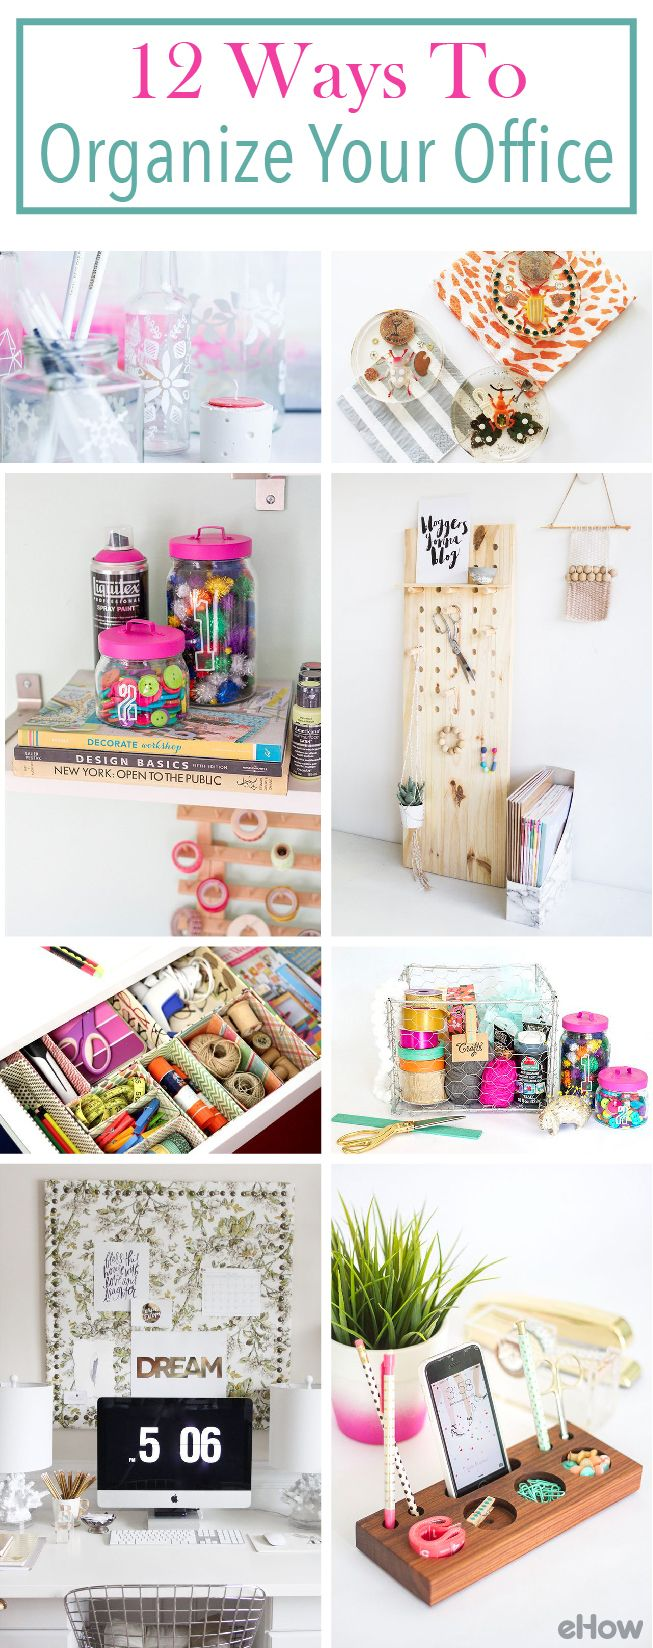 Organize your office to be the exact workspace you want and need!  From a customized peg board, perfectly decorated mason jar organizers and desk organizers. Get the full how-to and list here: http://www.ehow.com/how_6787212_way-organize-office-supplies.html?utm_source=pinterest.com&utm_medium=referral&utm_content=curated&utm_campaign=fanpage